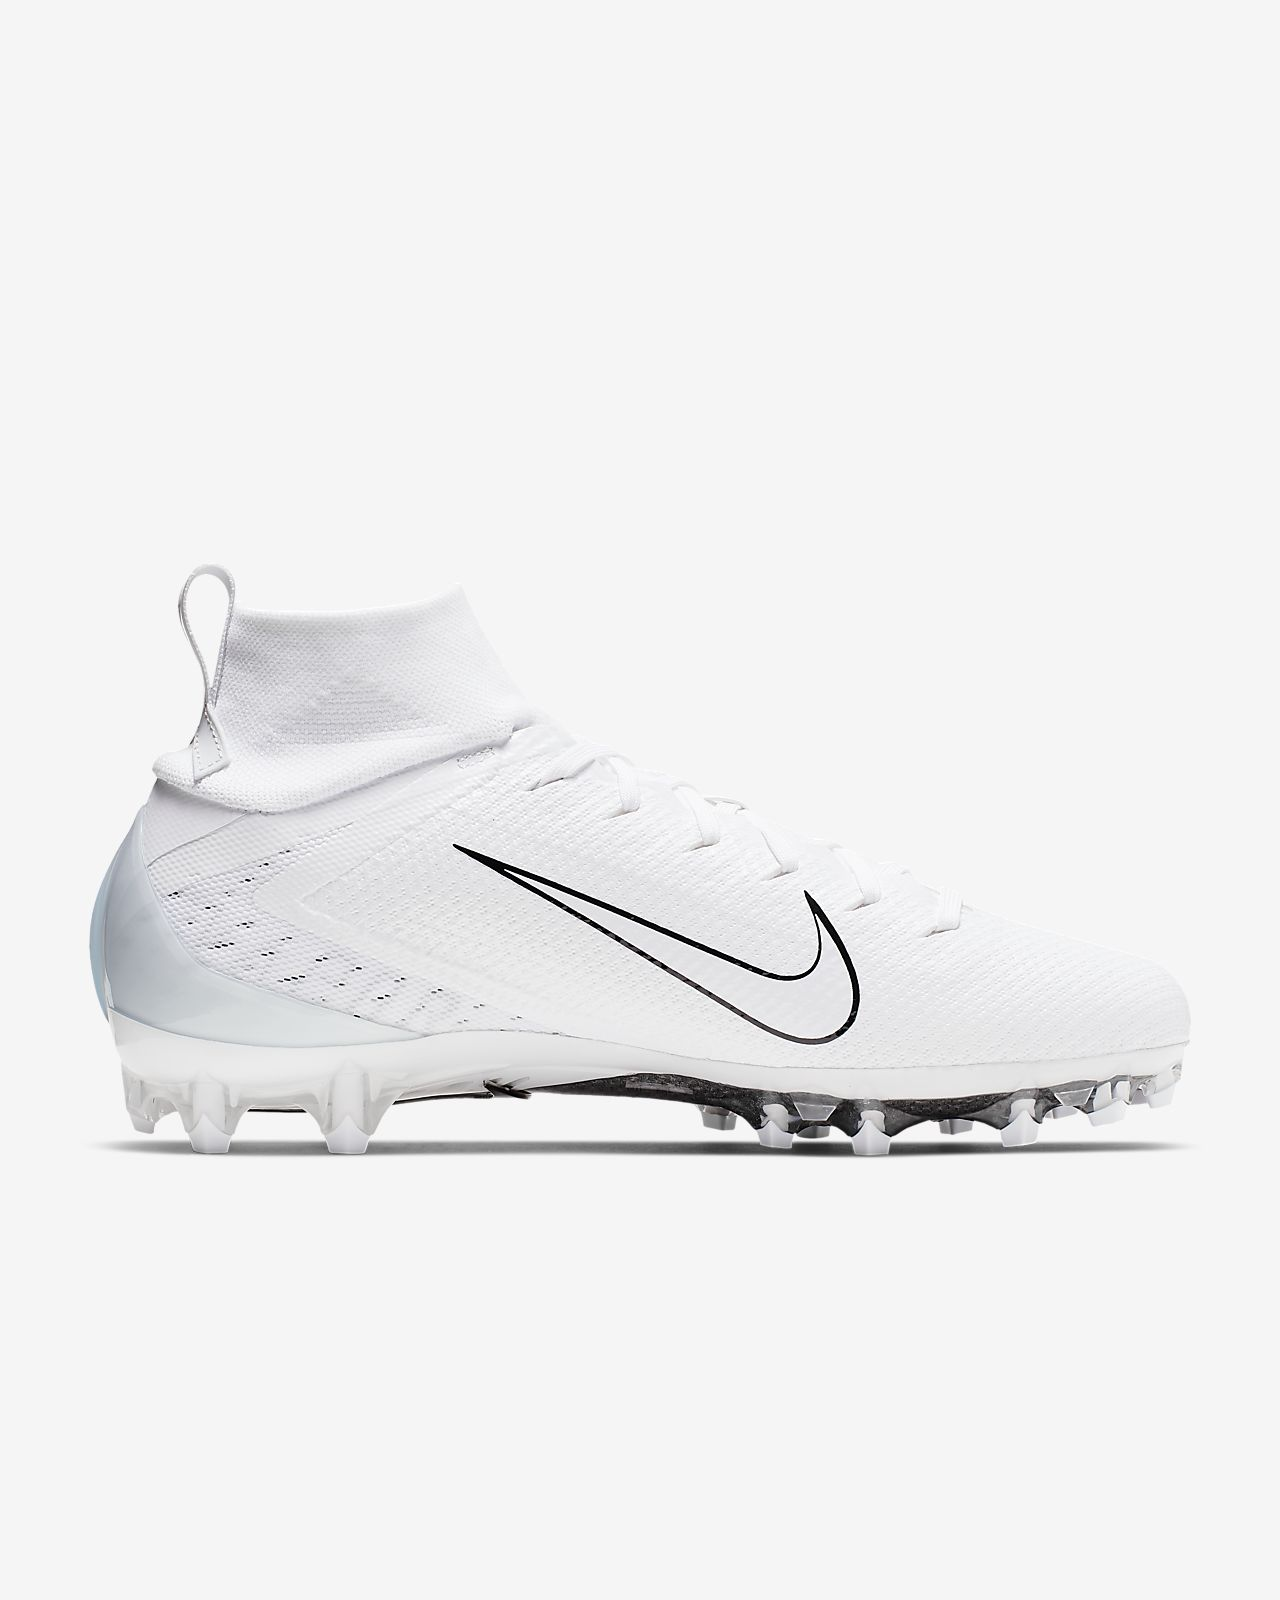 Nike Vapor Untouchable 3 Pro Football Cleat. Nike.com 10b7817db